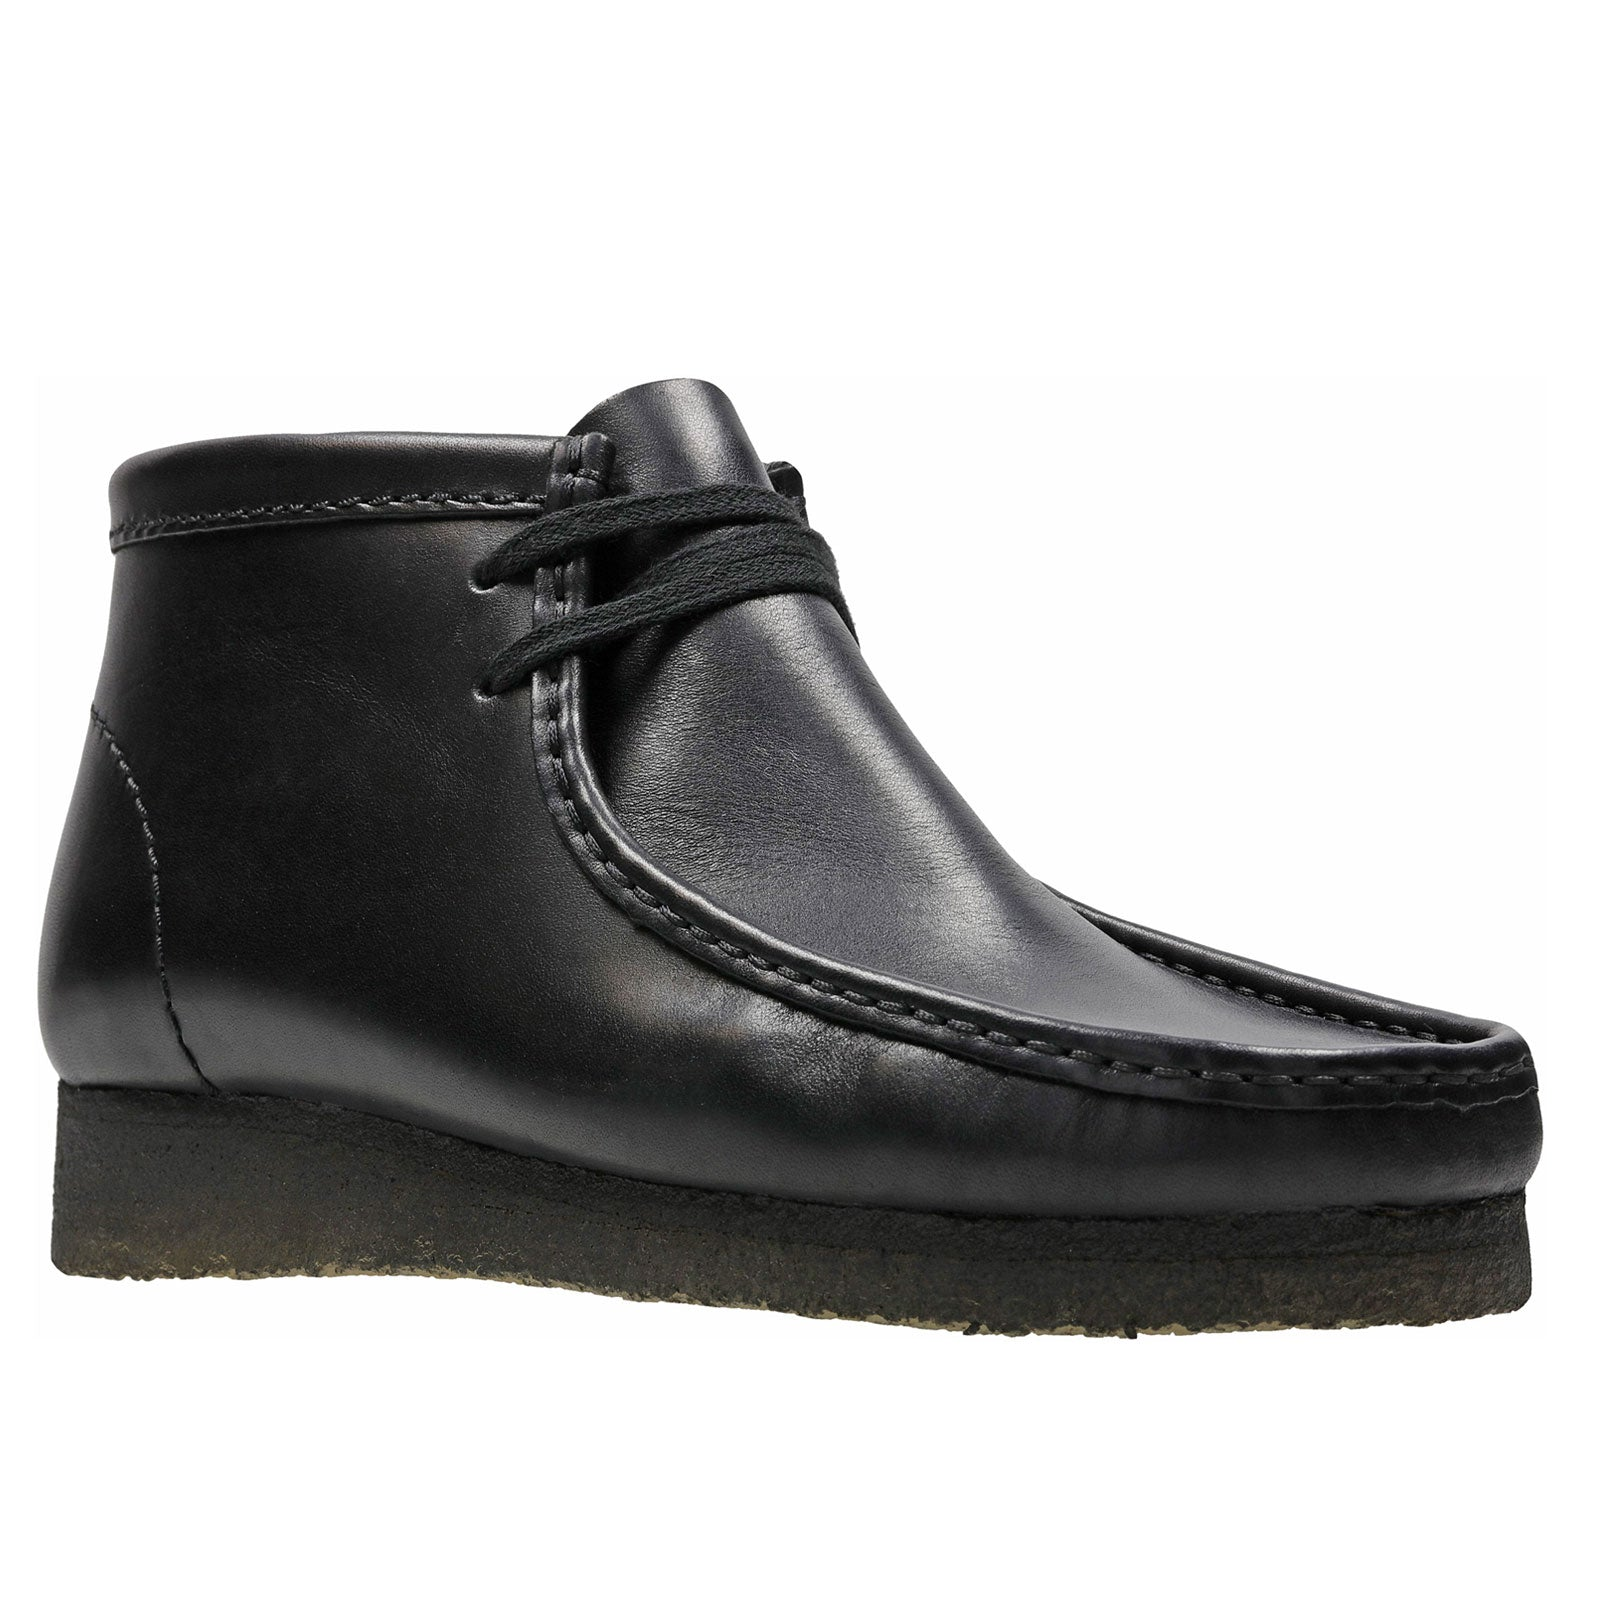 Clarks Wallabee Boot 55512 (Black Leather)